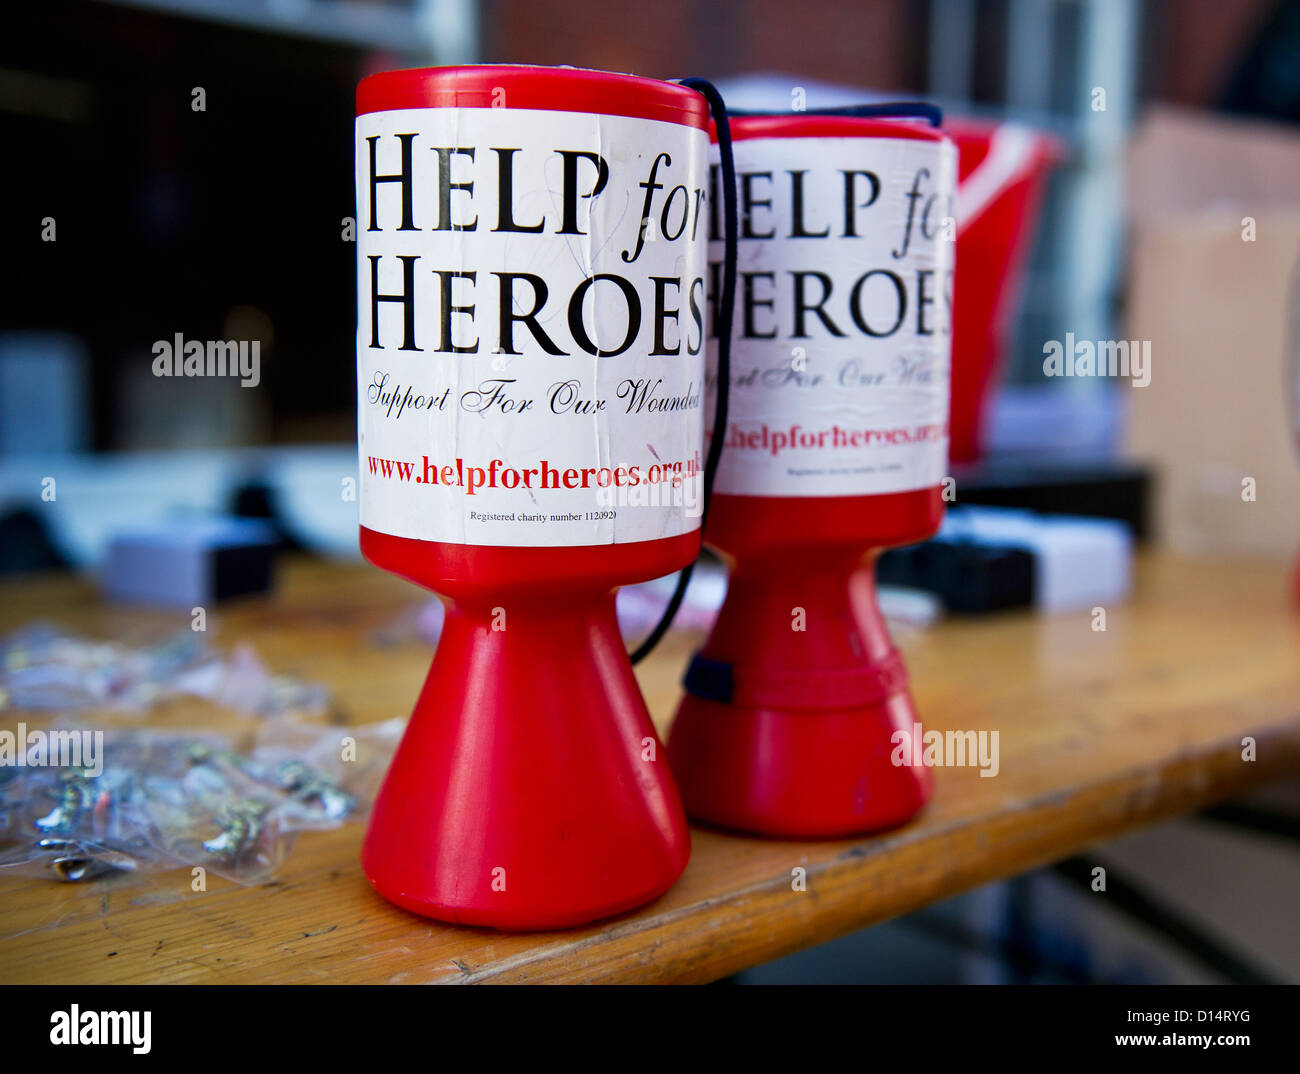 Collecting boxes for Help for Heroes charity. - Stock Image